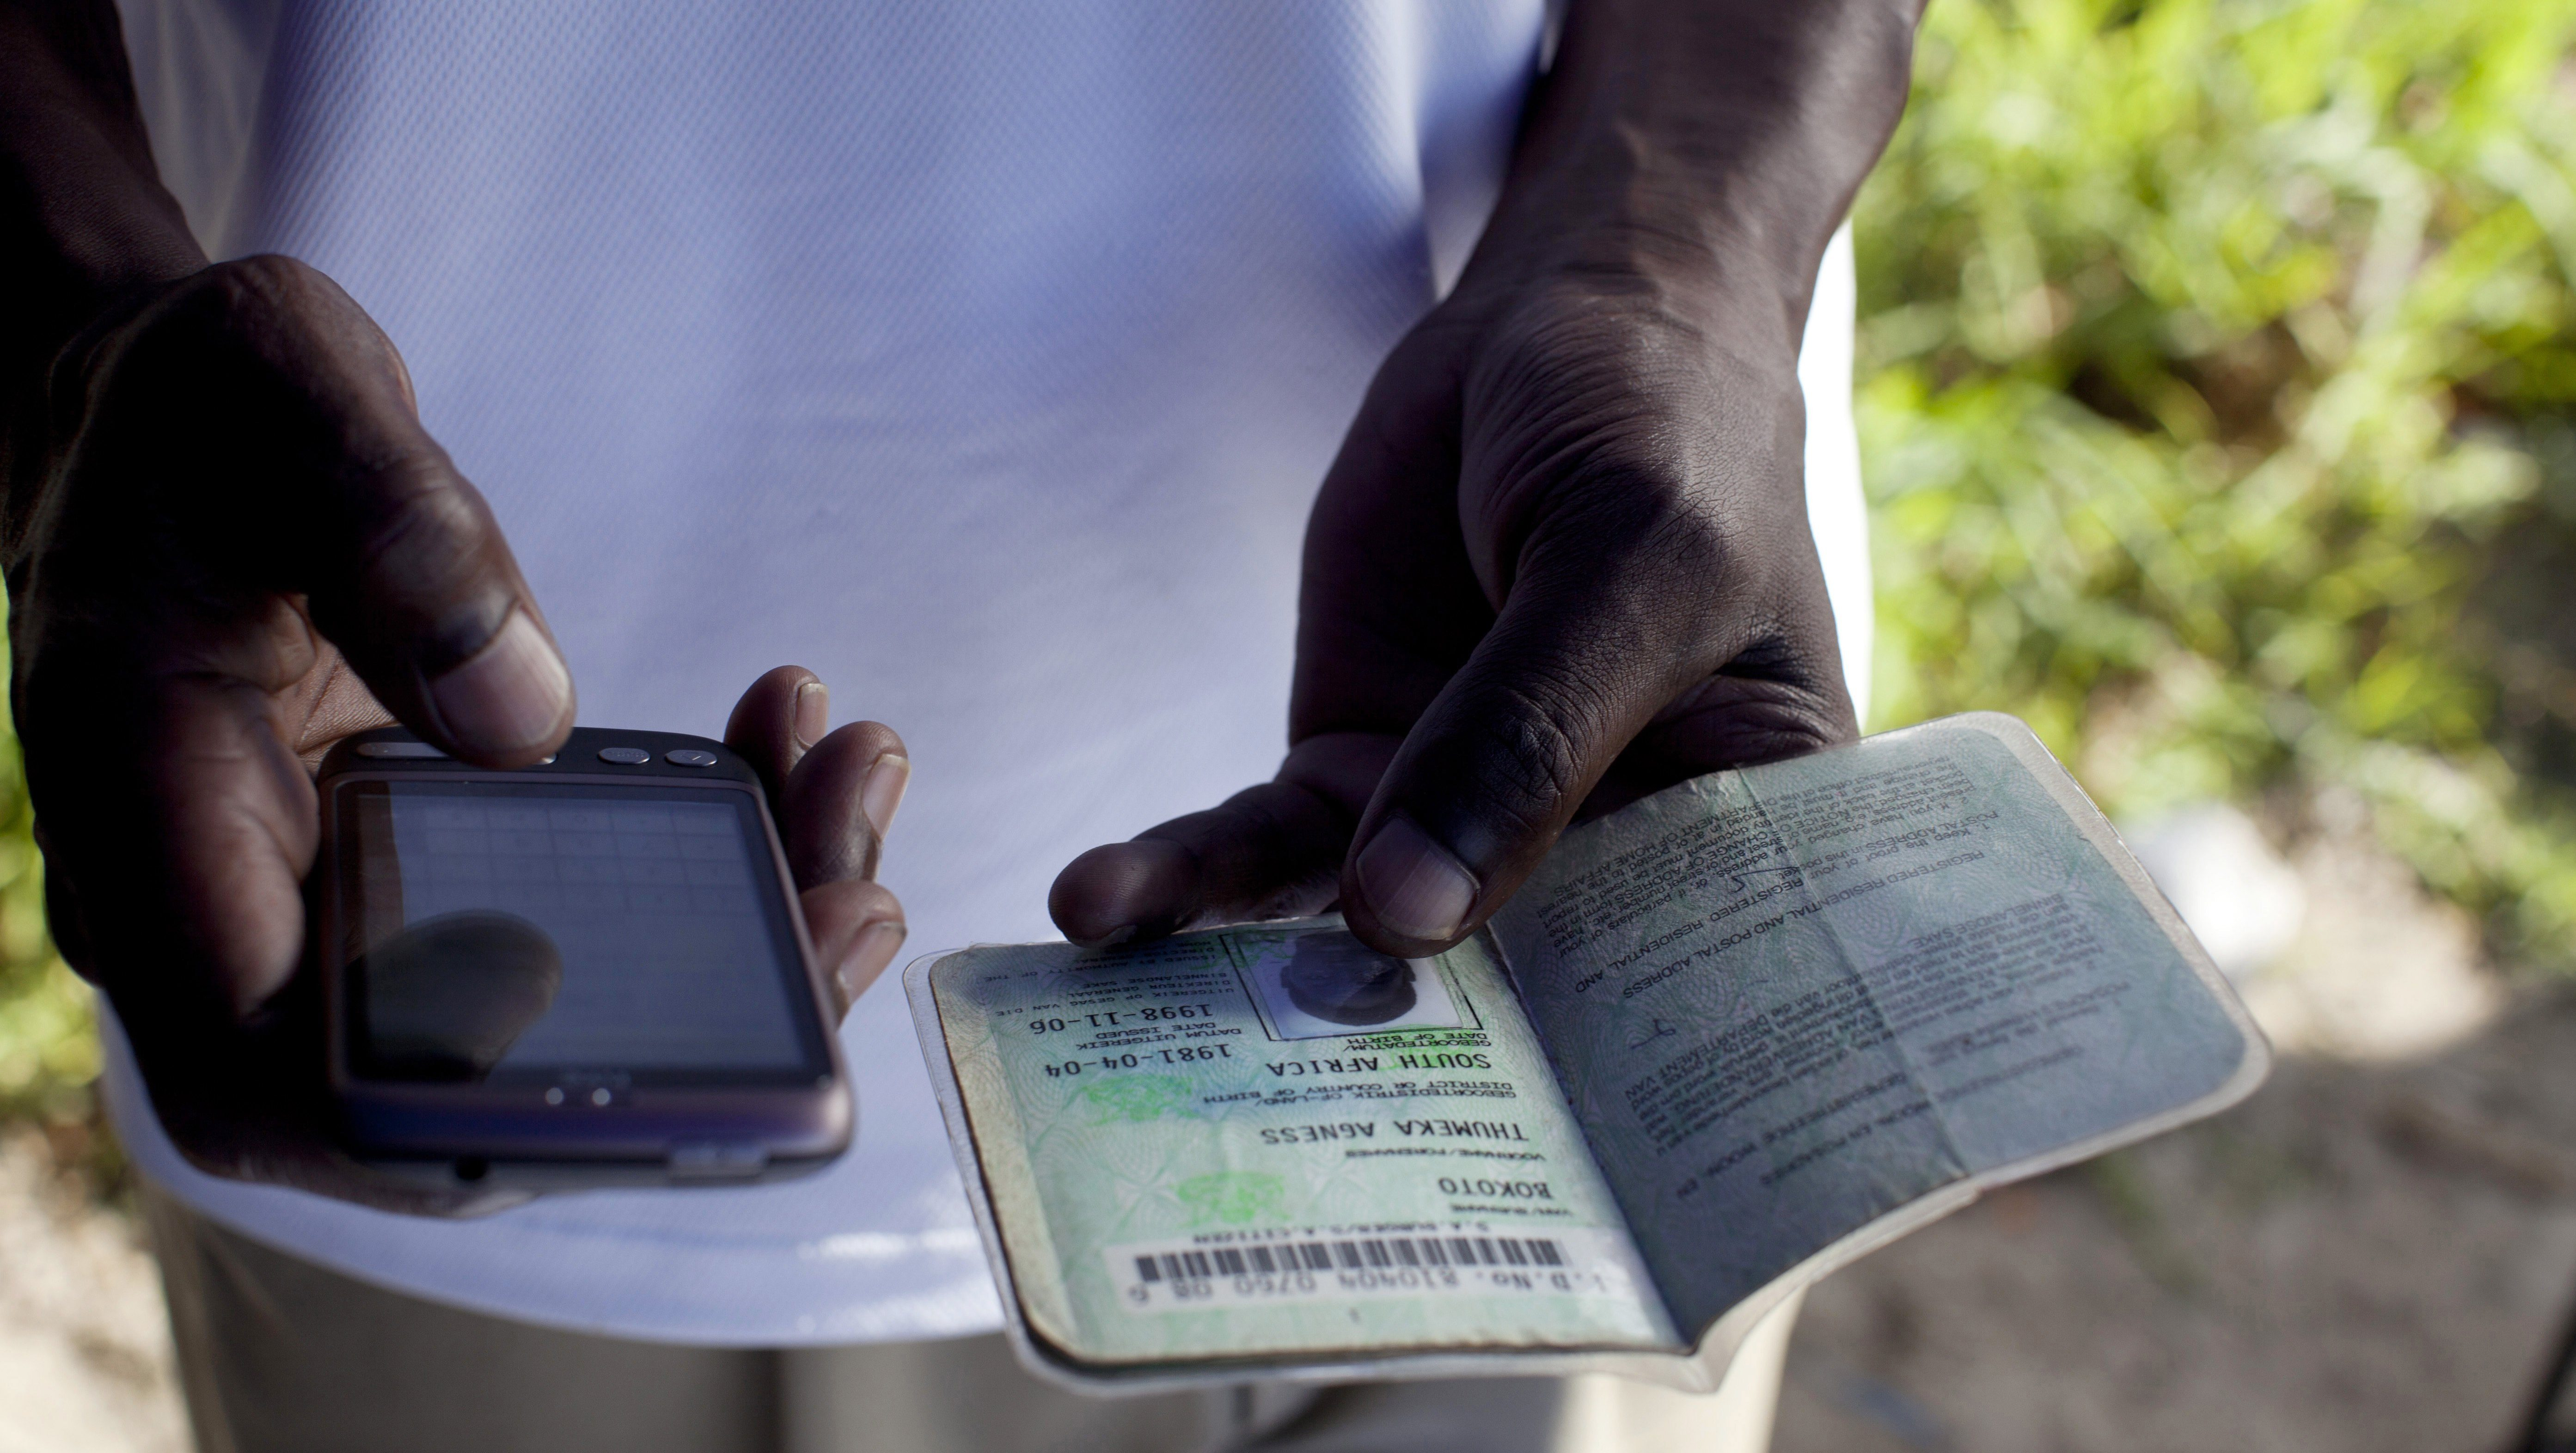 An employee of a bank checks a South African ID document via mobile phone as he sells accounts on the street in 2011 in Khayelitsha, the poorest and largest township outside Cape Town, South Africa.